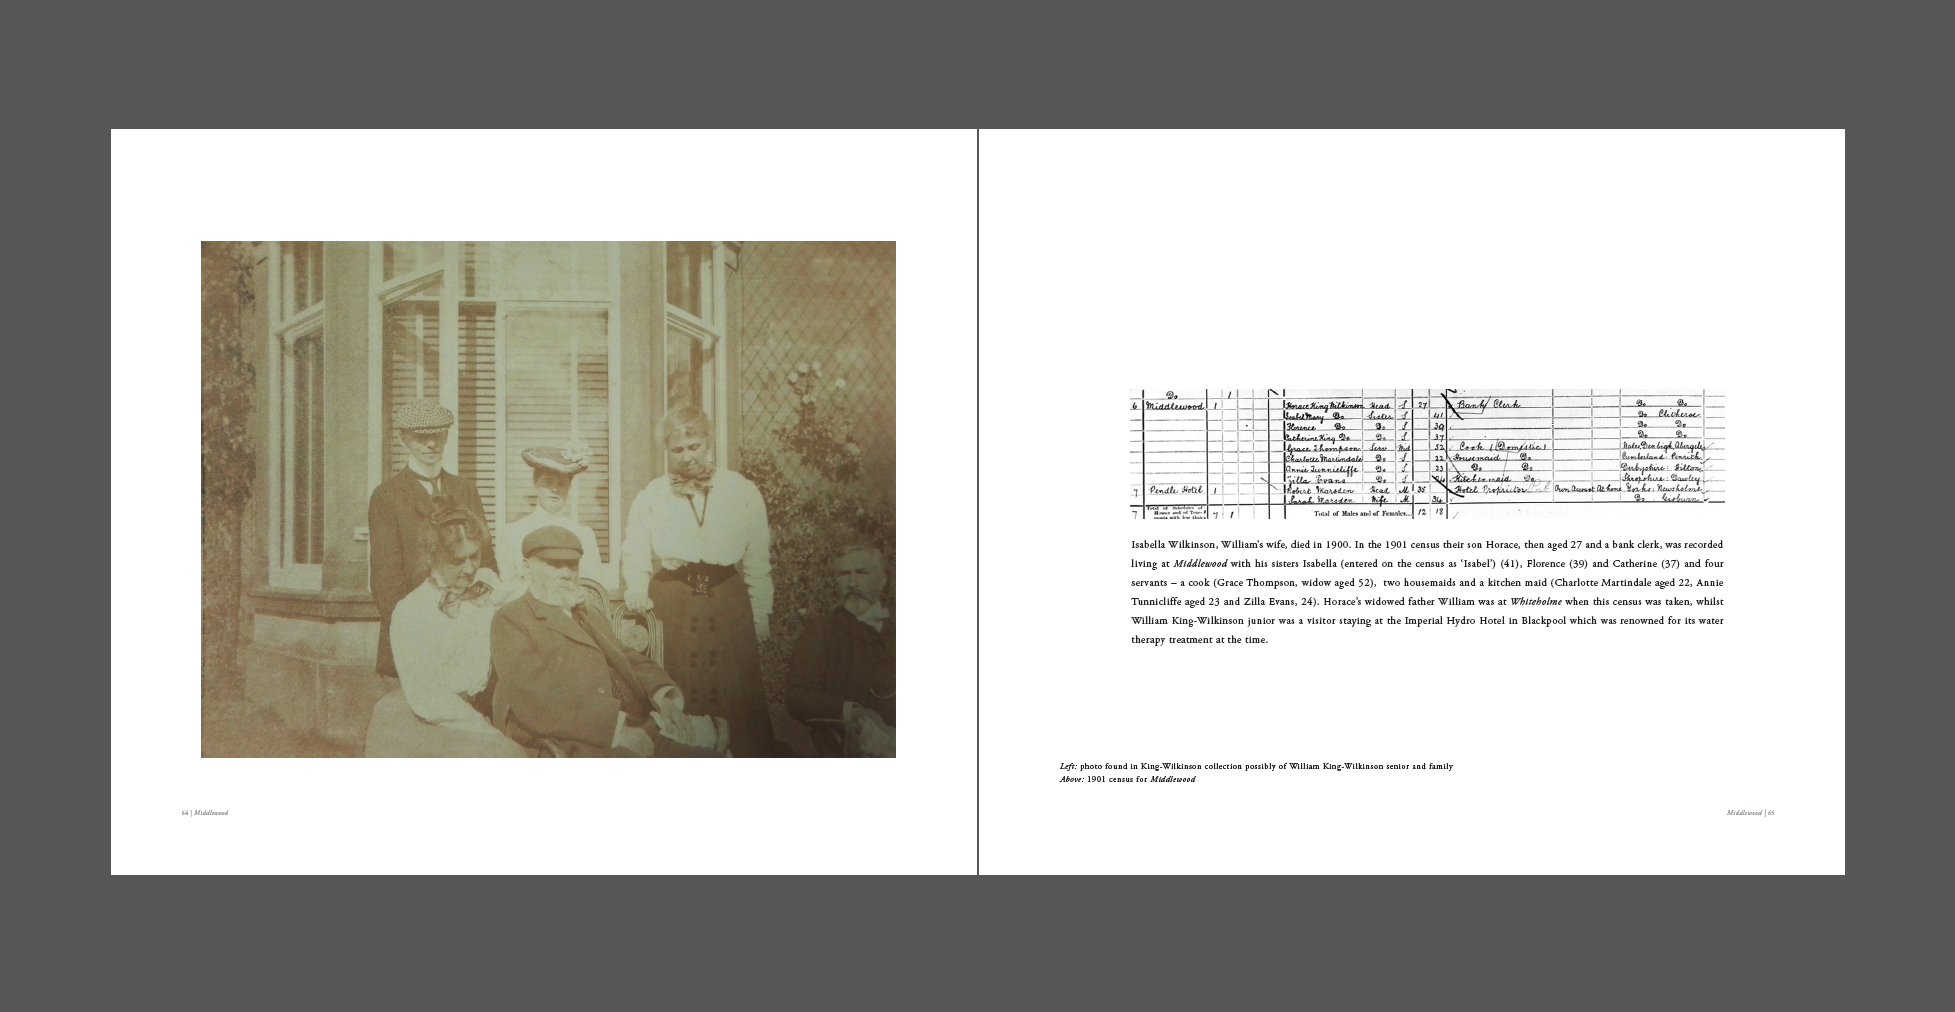 BENCHMARK_HOUSE_HISTORIES_Carol_Fulton_Middlewood_spread_64_65.jpg